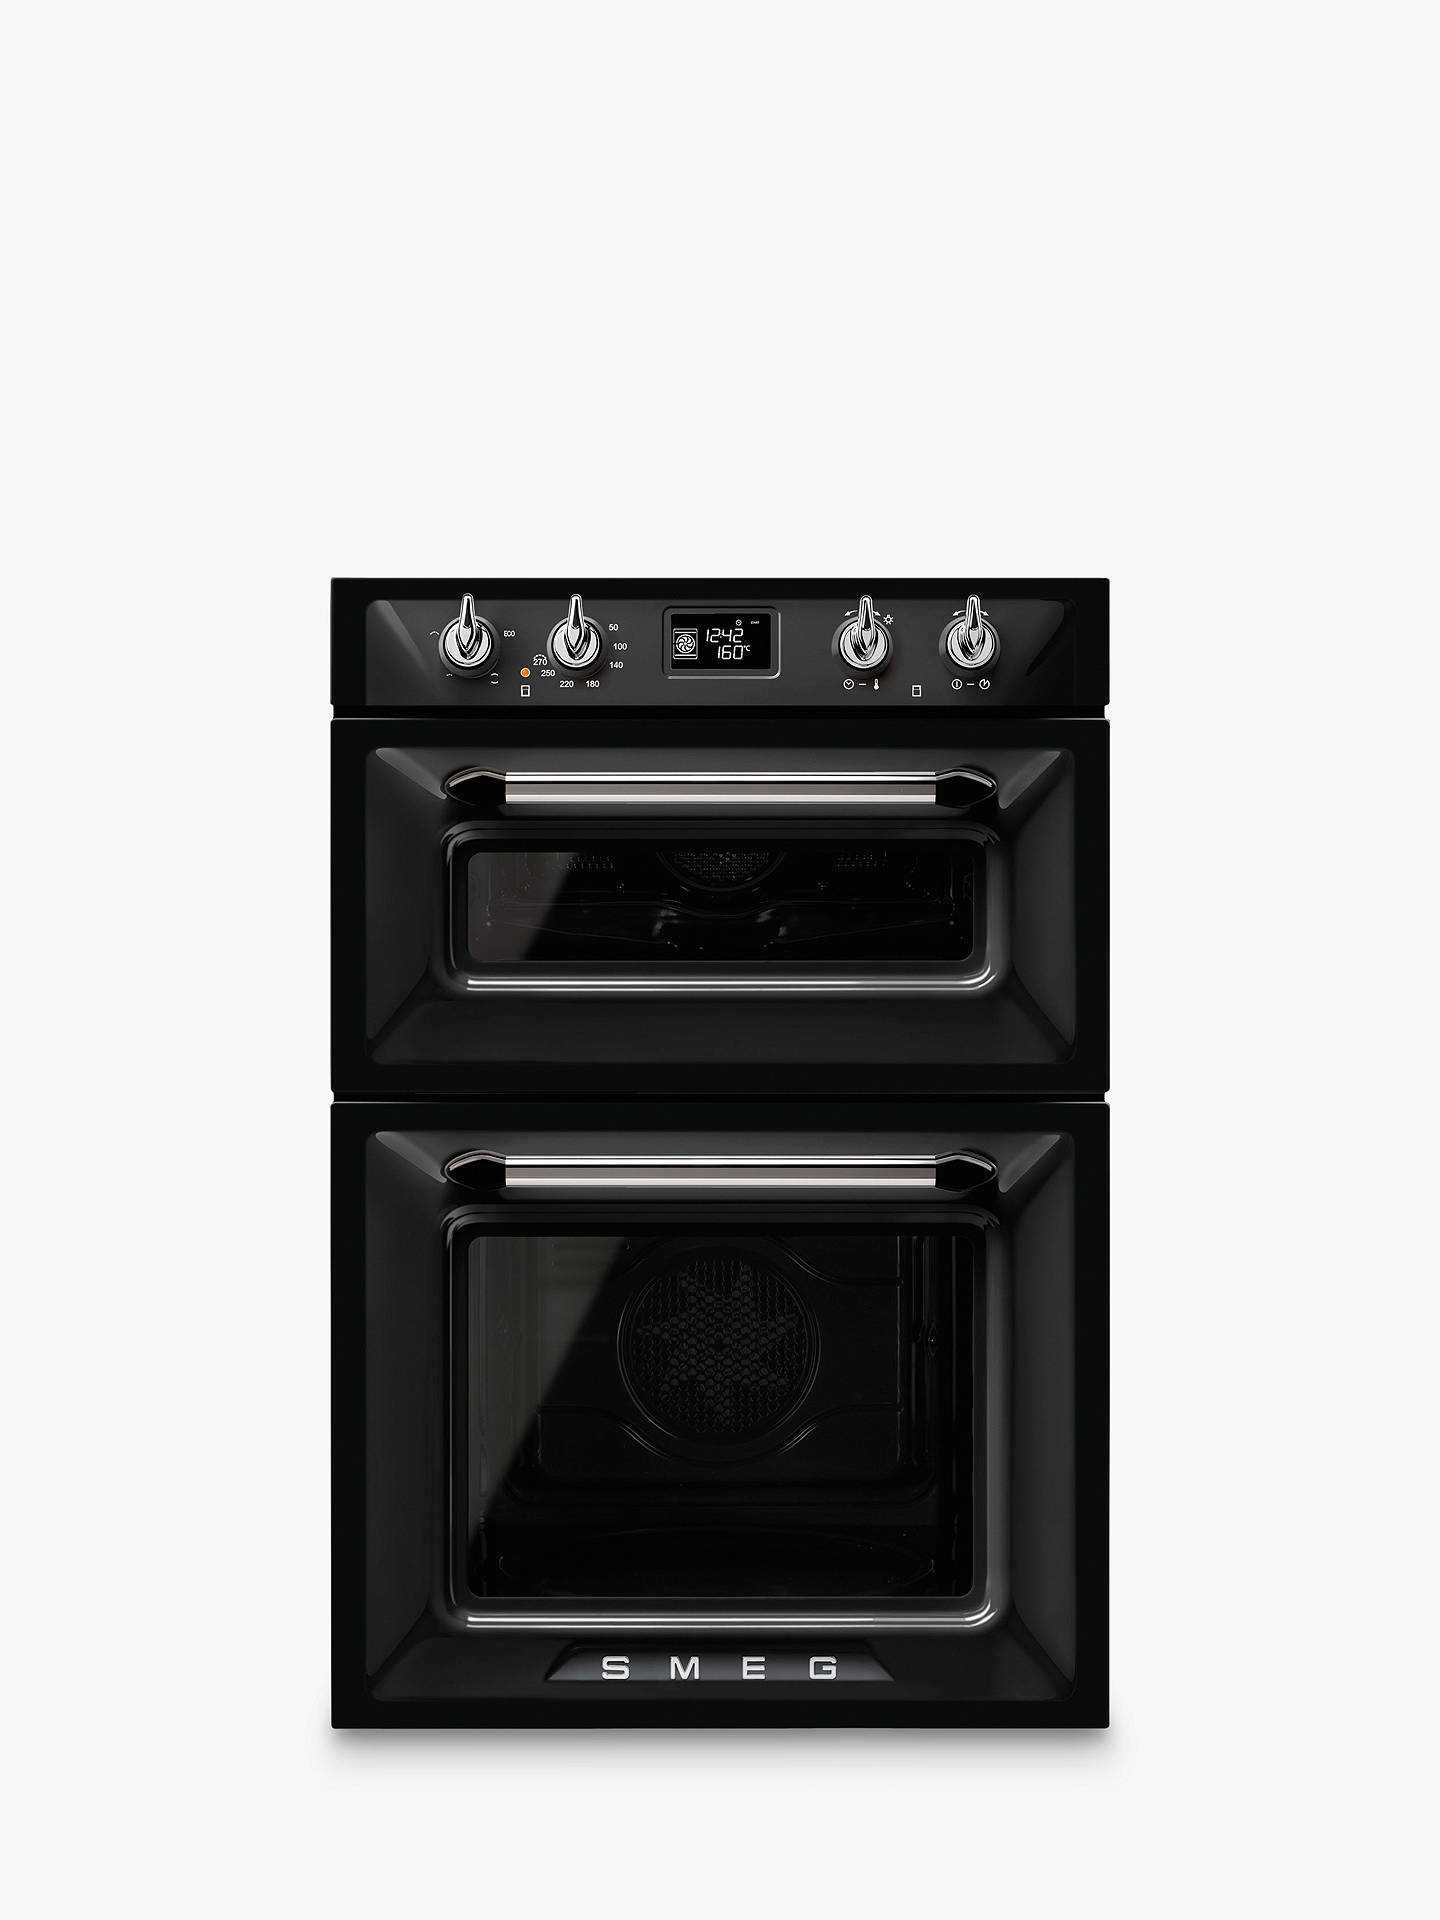 BuySmeg DOSF6920P1 Victoria Built-In Multifunction Double Oven, Black Online at johnlewis.com